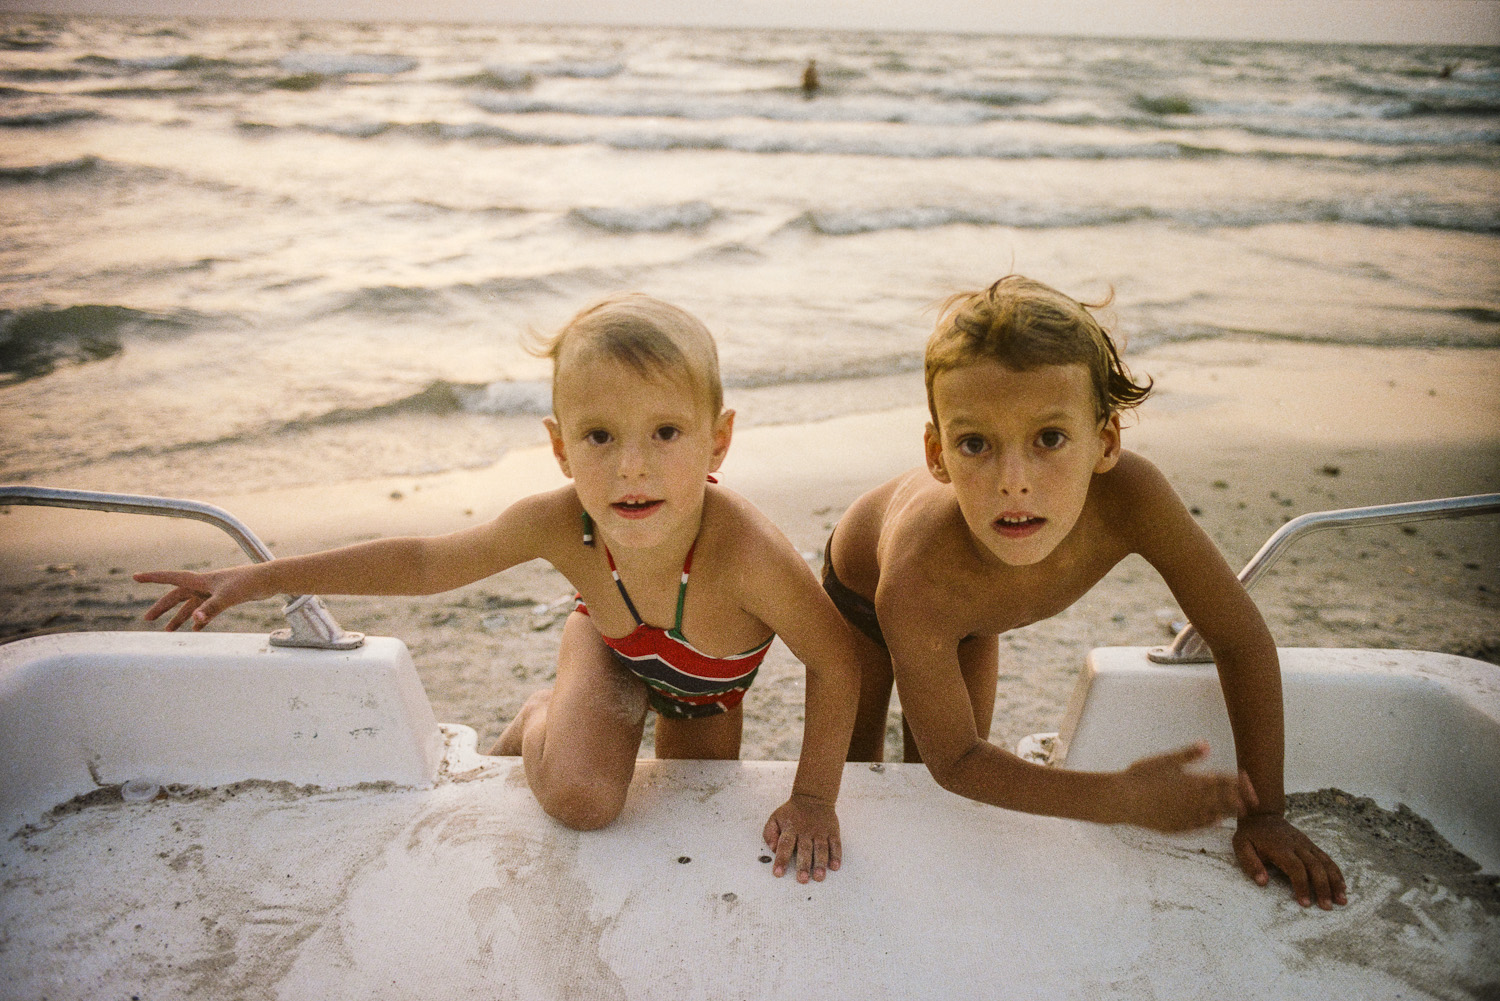 Liad and Yaniv, Lake Kinneret - 1985